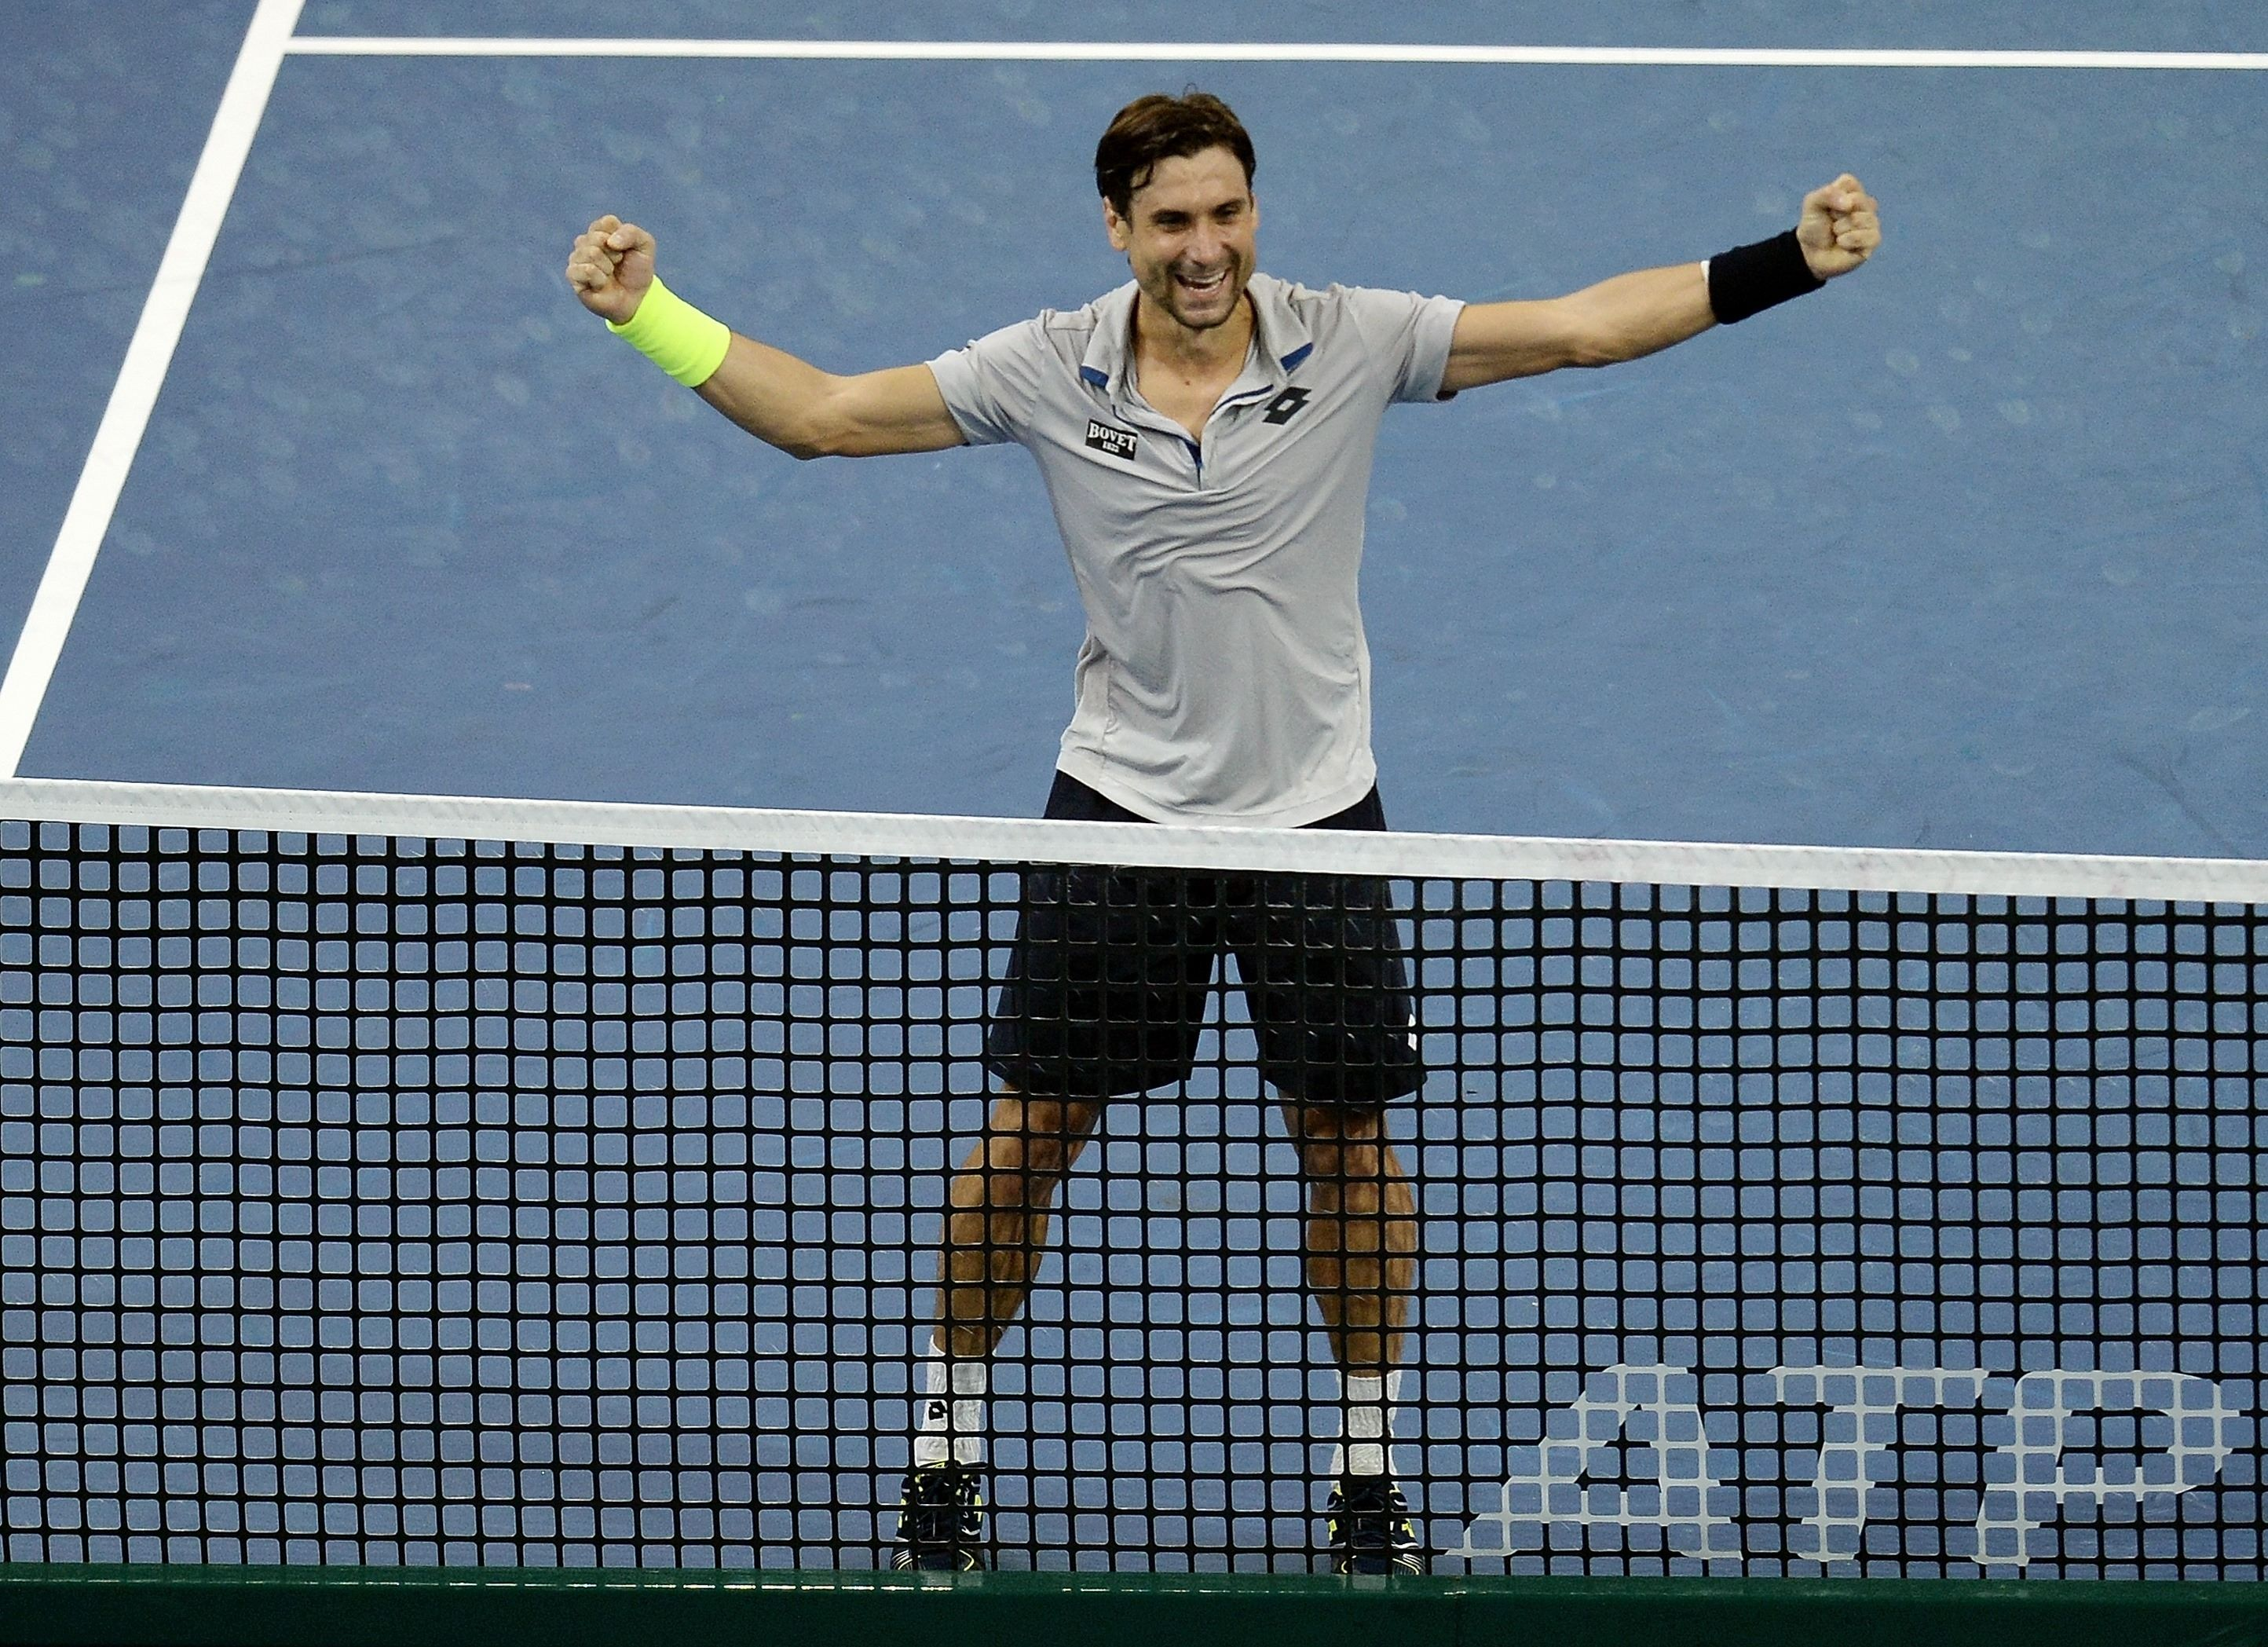 Spain's David Ferrer celebrates after defeating compatriot Feliciano Lopez during the men's singles final at the 2015 Malaysian Open tennis tournament in Kuala Lumpur on October 4, 2015.   AFP PHOTO / MANAN VATSYAYANA